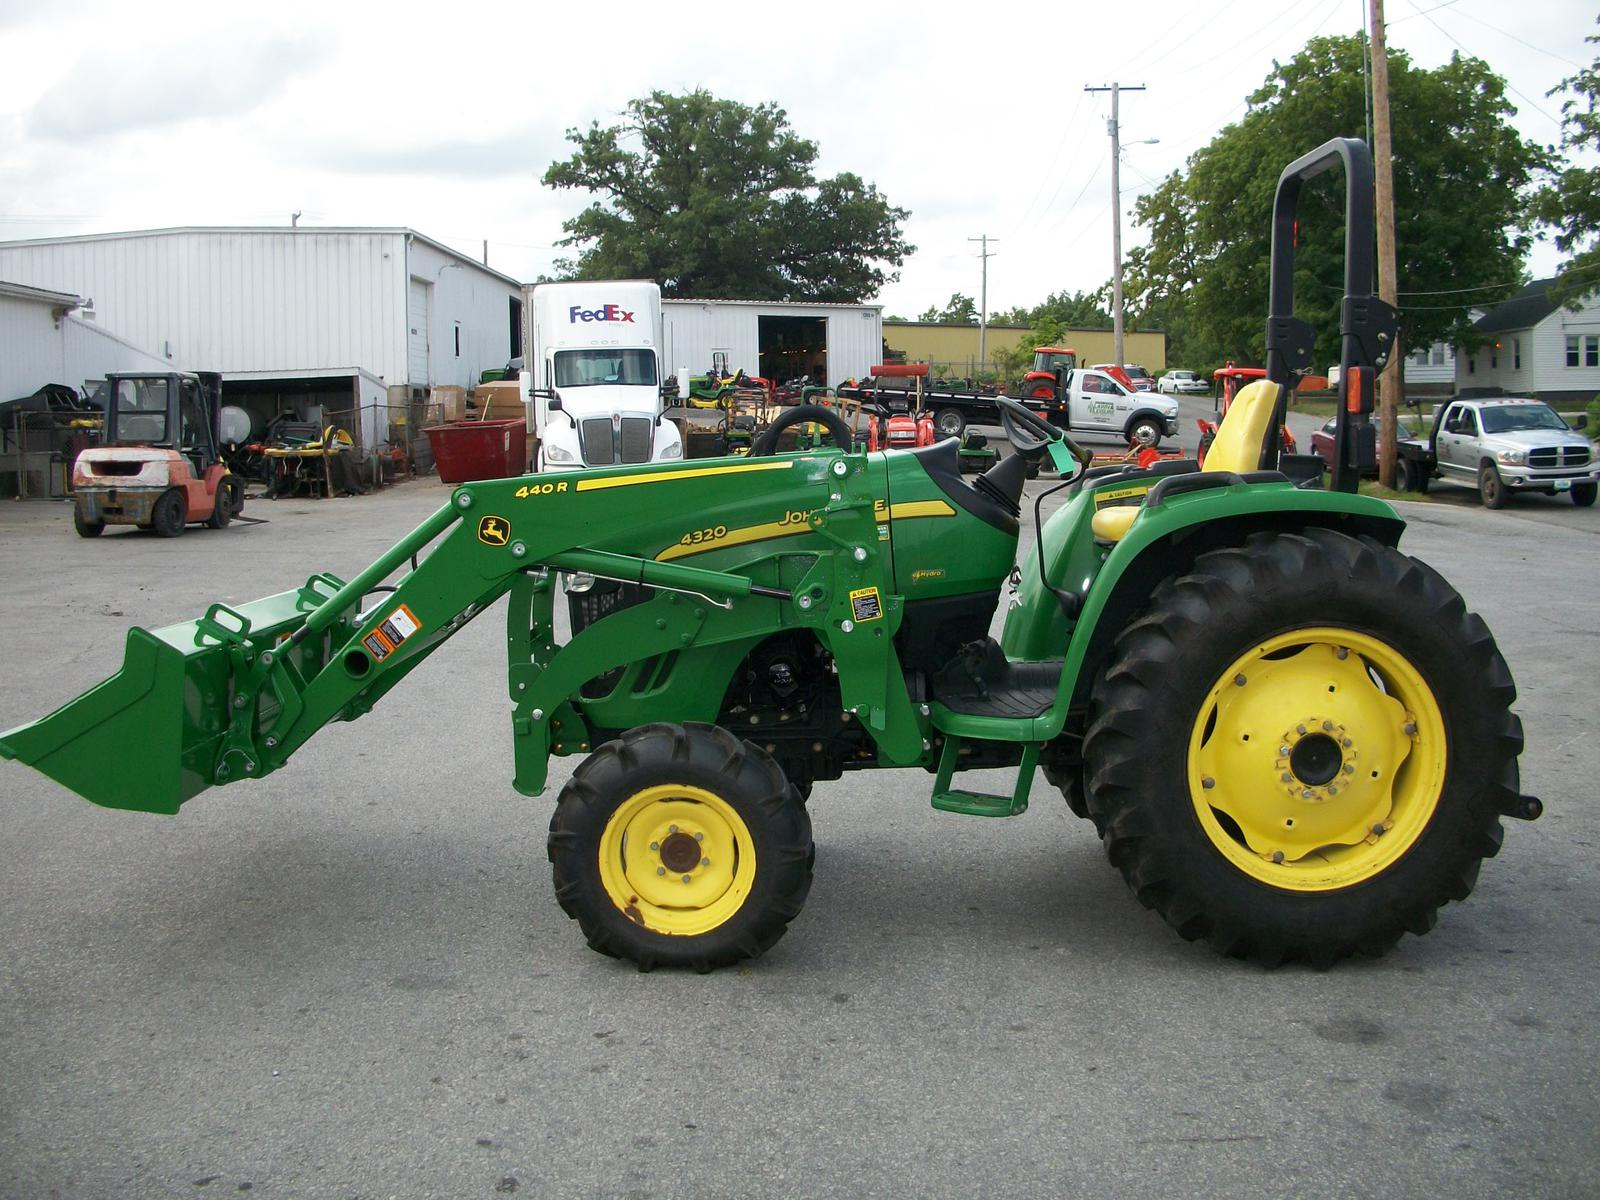 001 2007 john deere 4320 compact tractor (48 hp) for sale in columbia